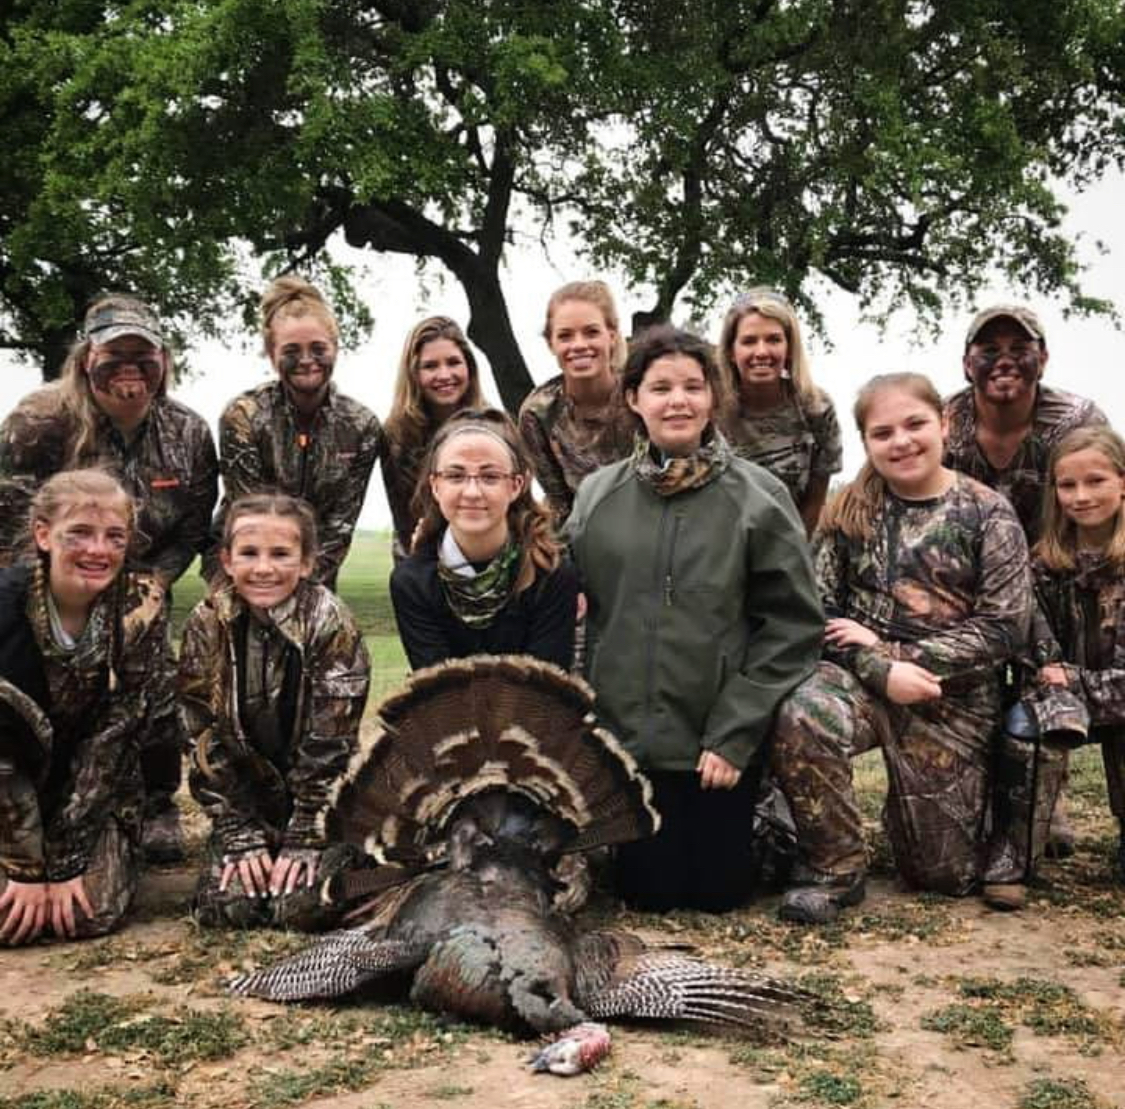 Trinity Oaks - Trinity Oaks is a 501C 3 Non-Profit that uses hunting, fishing, and the outdoors to give back and make a difference in someones life. Every year Kendall donates her time to multiple Trinity Oaks events including an All-Girl turkey hunt. They take out a group of young girls ages 16 and under on a turkey hunt and introduces them to the outdoor lifestyle. The kids get to hunt for completely free and enjoy learning different skills to make them a better hunter.[Read more about what Trinity Oaks does here.]